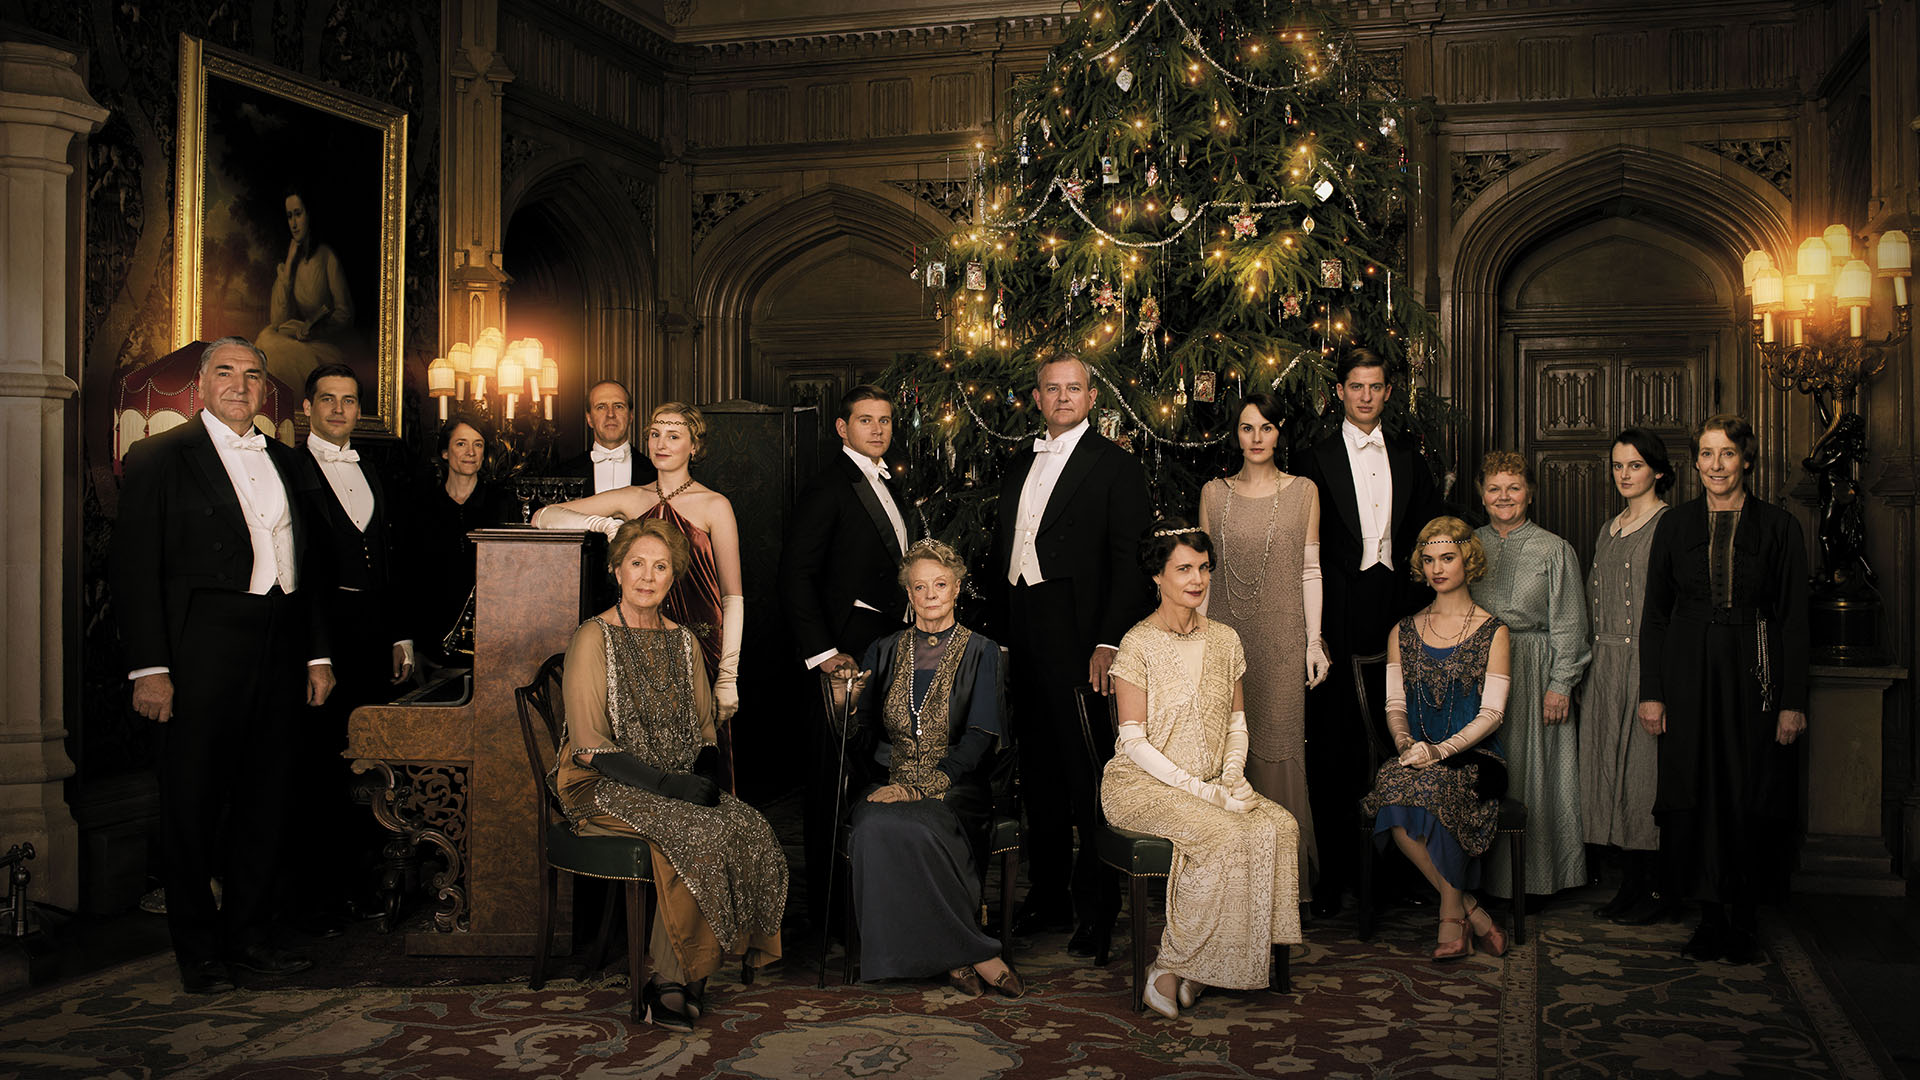 Downton Abbey Marathon: Schedule for All Six Seasons on THIRTEEN